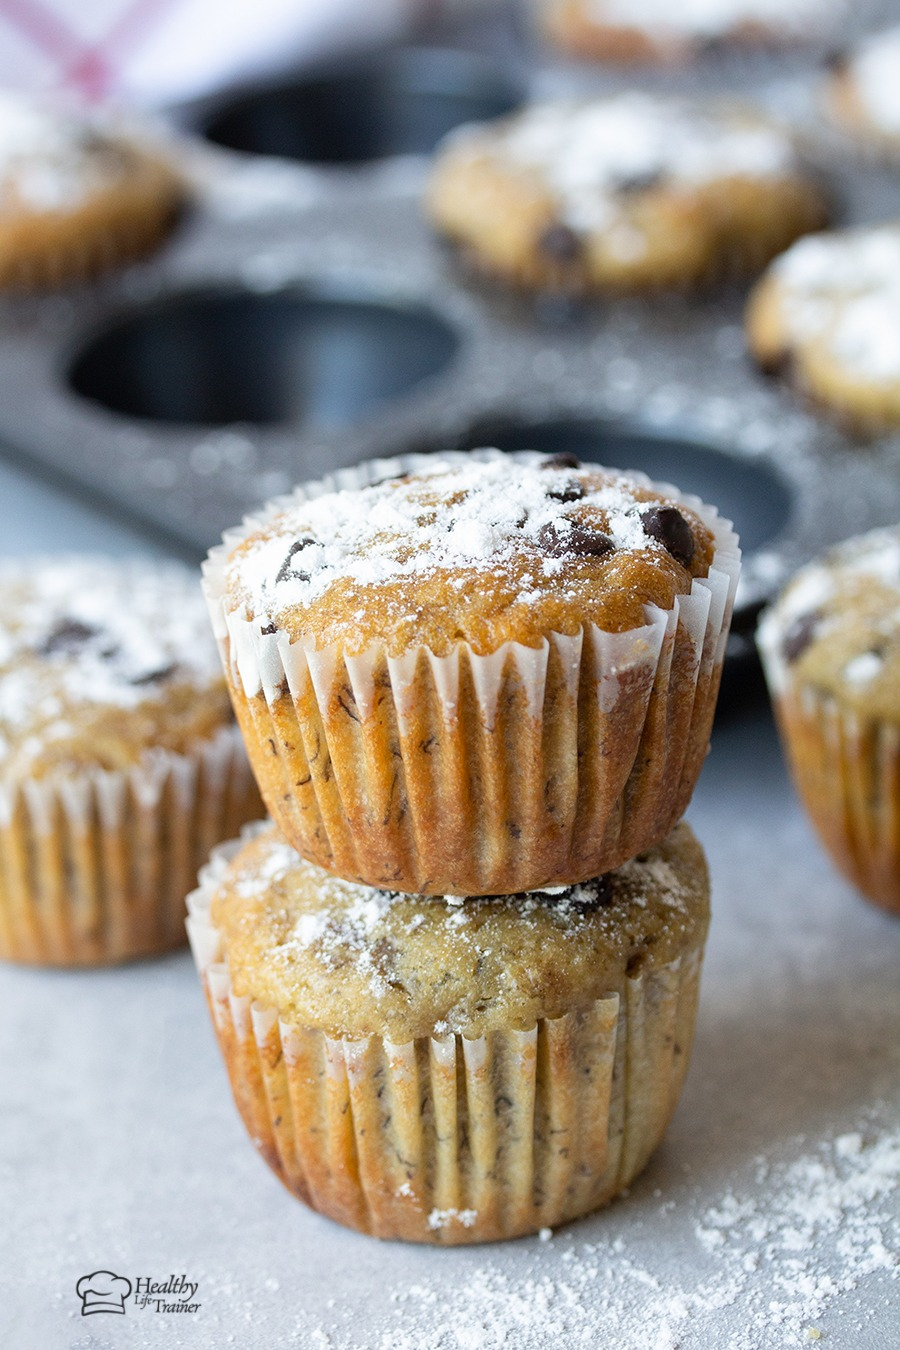 Chocolate chip banana muffins are fluffy, moist and have dens banana flavour.